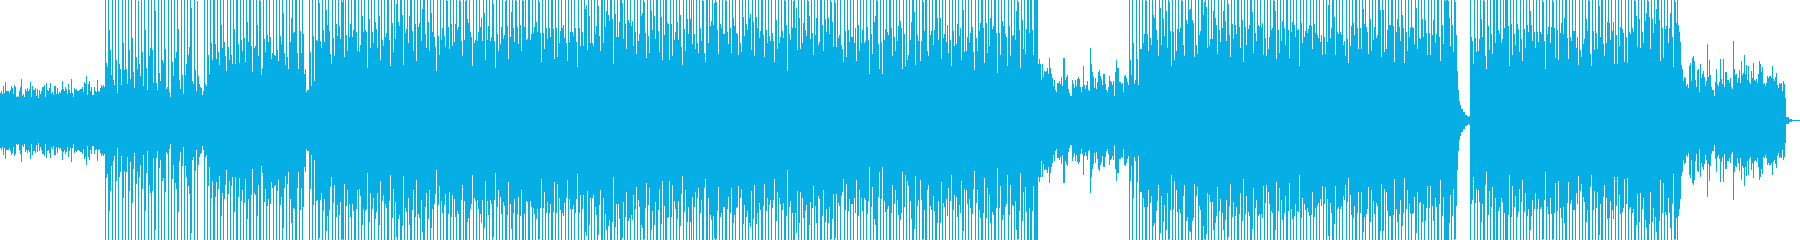 Stylish synth guitar pop's reproduced waveform